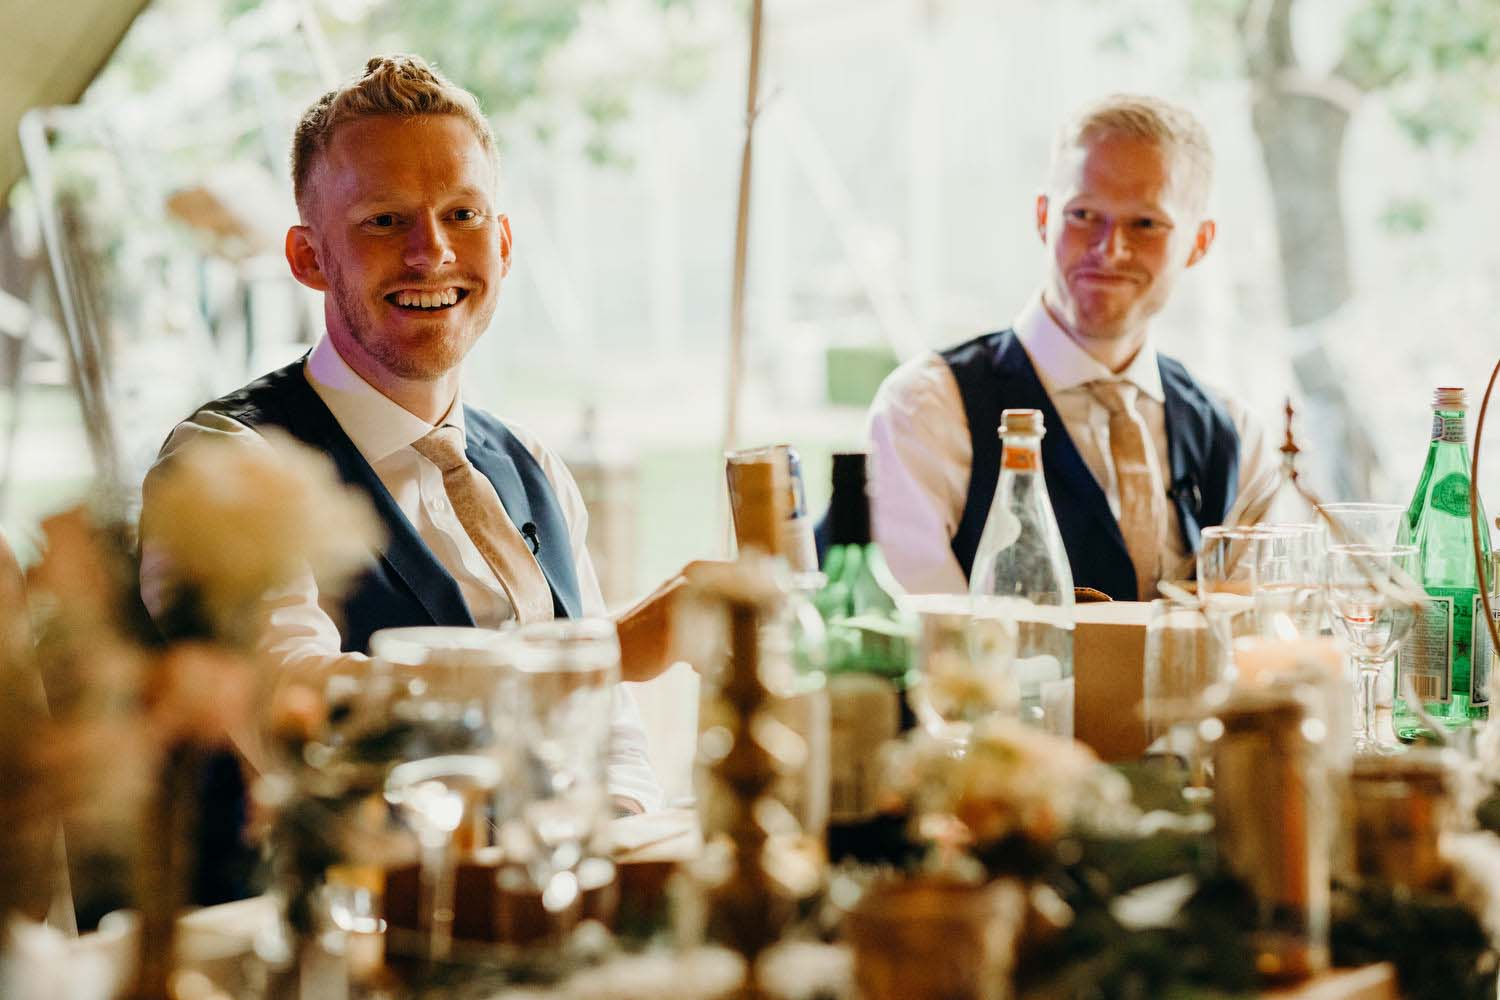 Brothers of Groom at tipi wedding